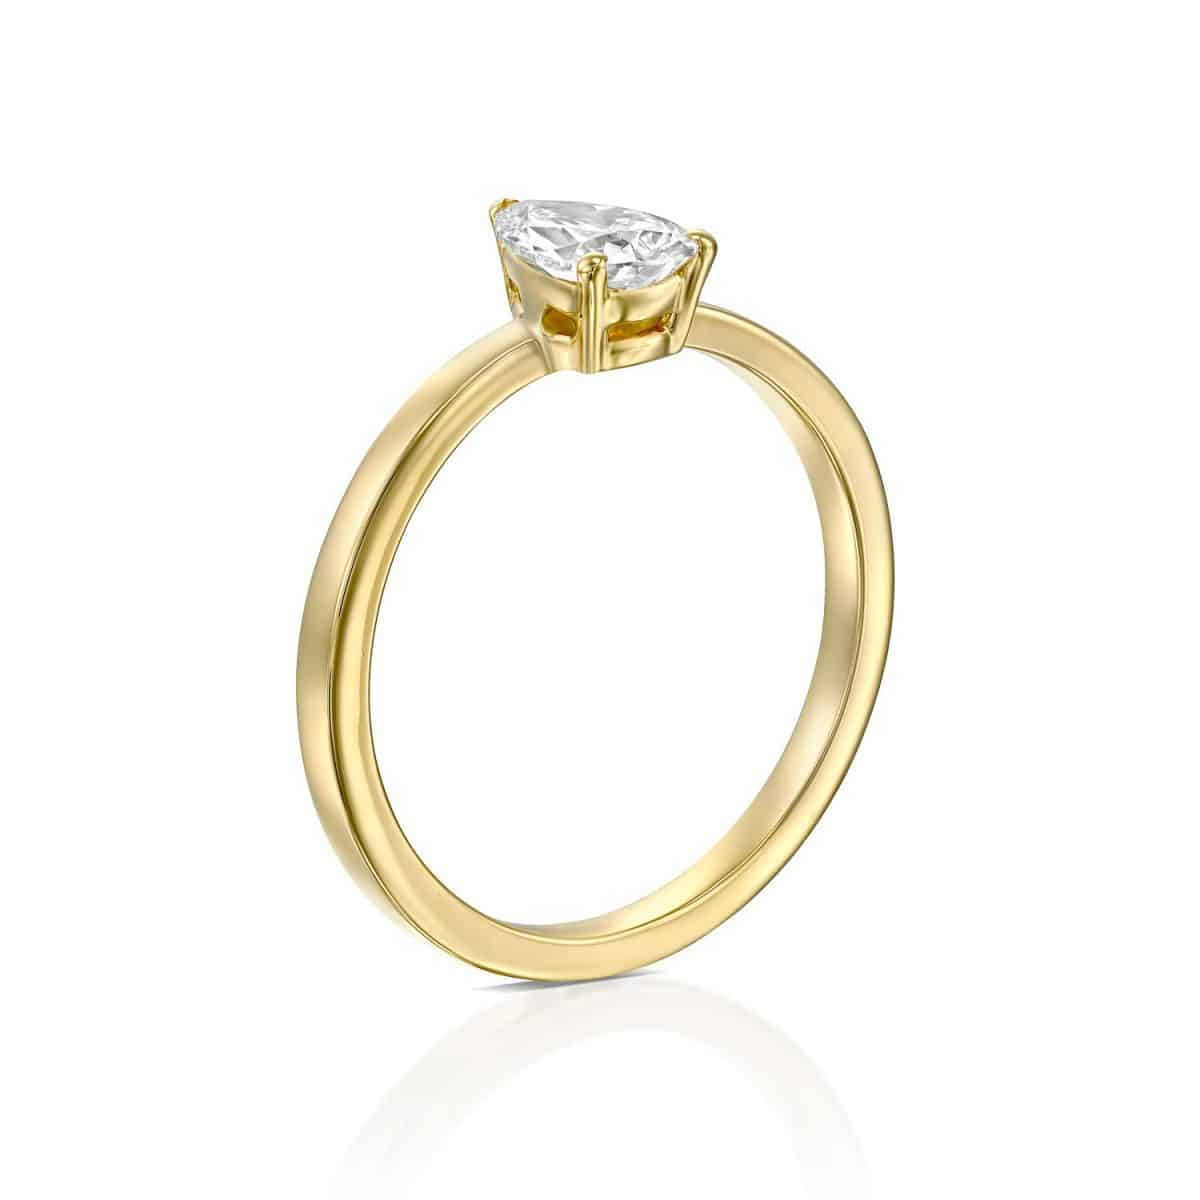 Brittney - Yellow Gold Lab Grown Diamond Engagement Ring 0.60ct. - standing